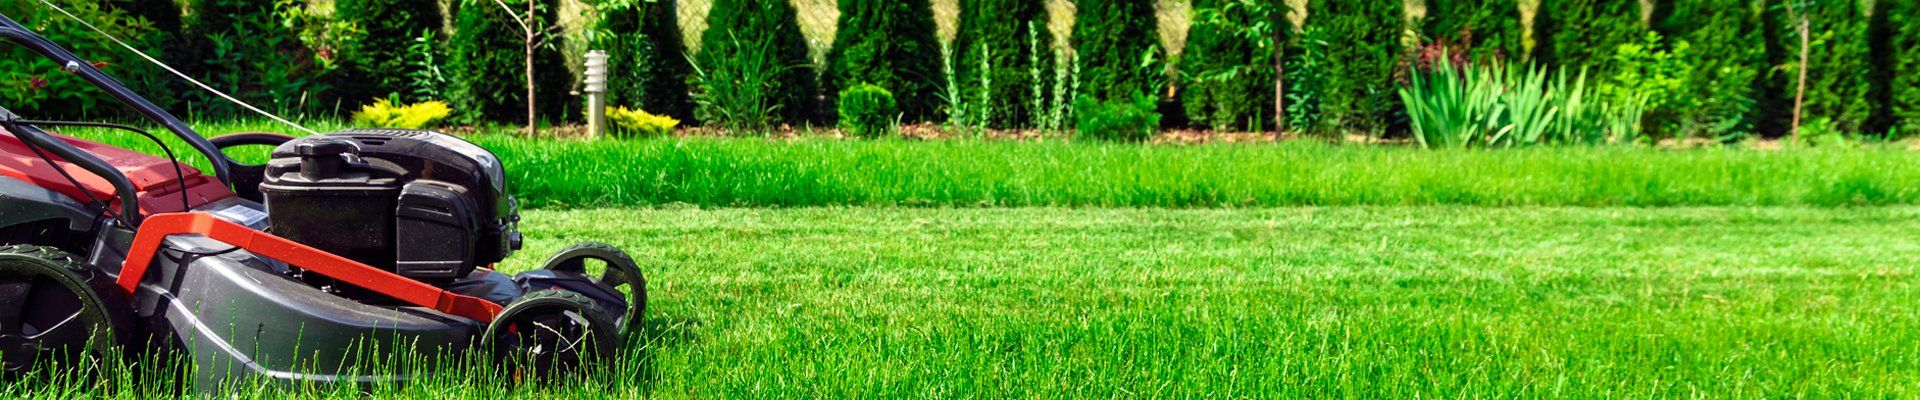 Lawn & Grass Cutting Mowing Services Companies Whitby Durham Region